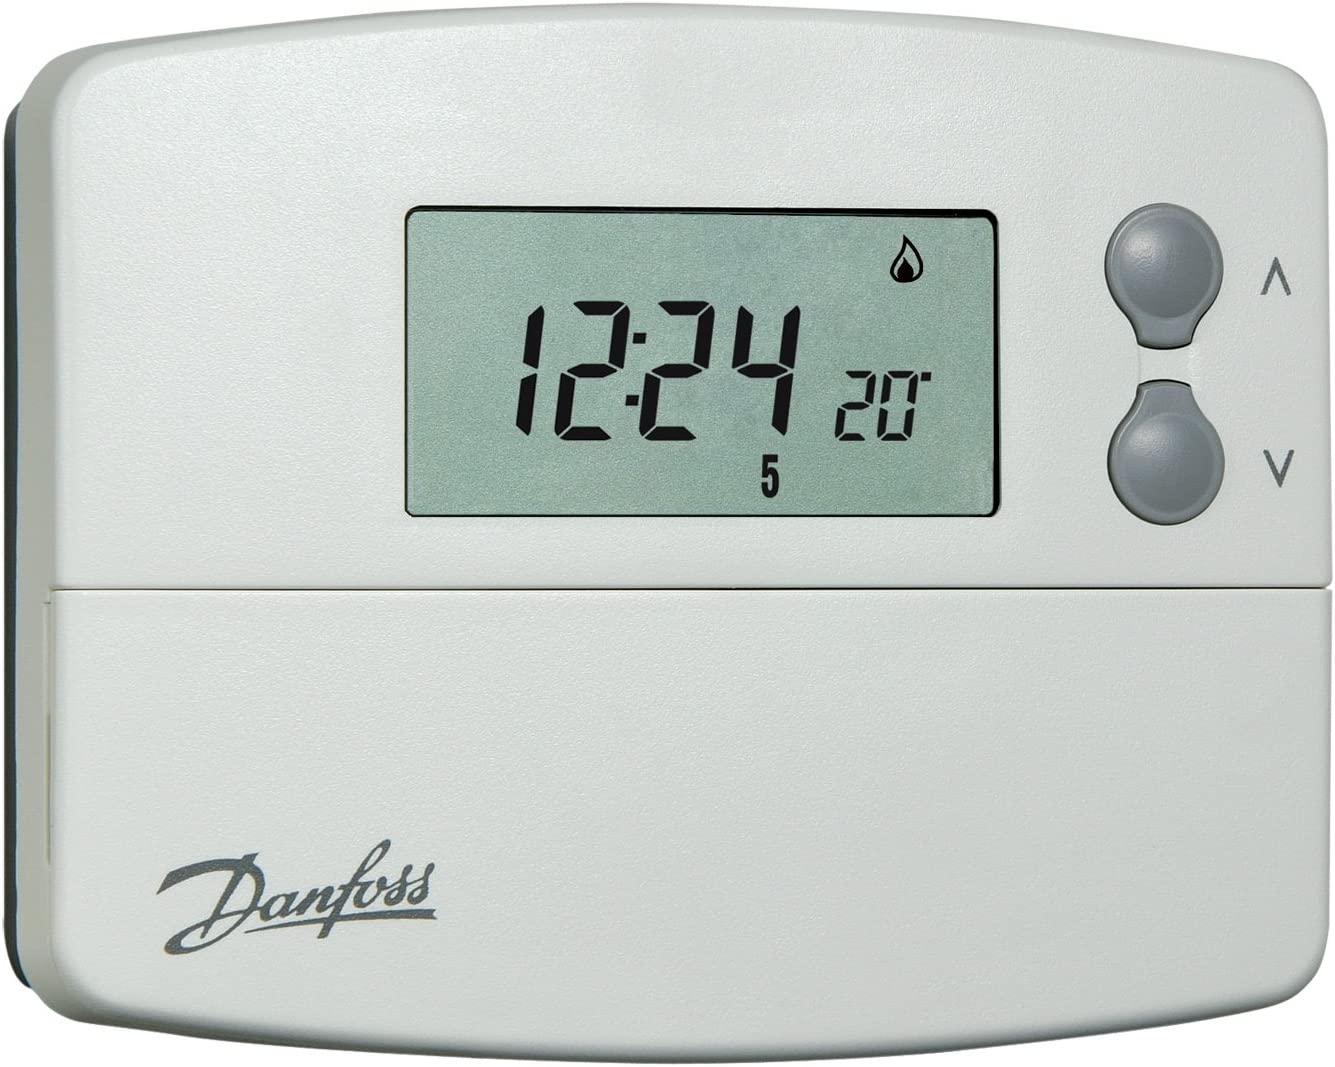 Danfoss battery-operated TP5001 programmable room thermostat